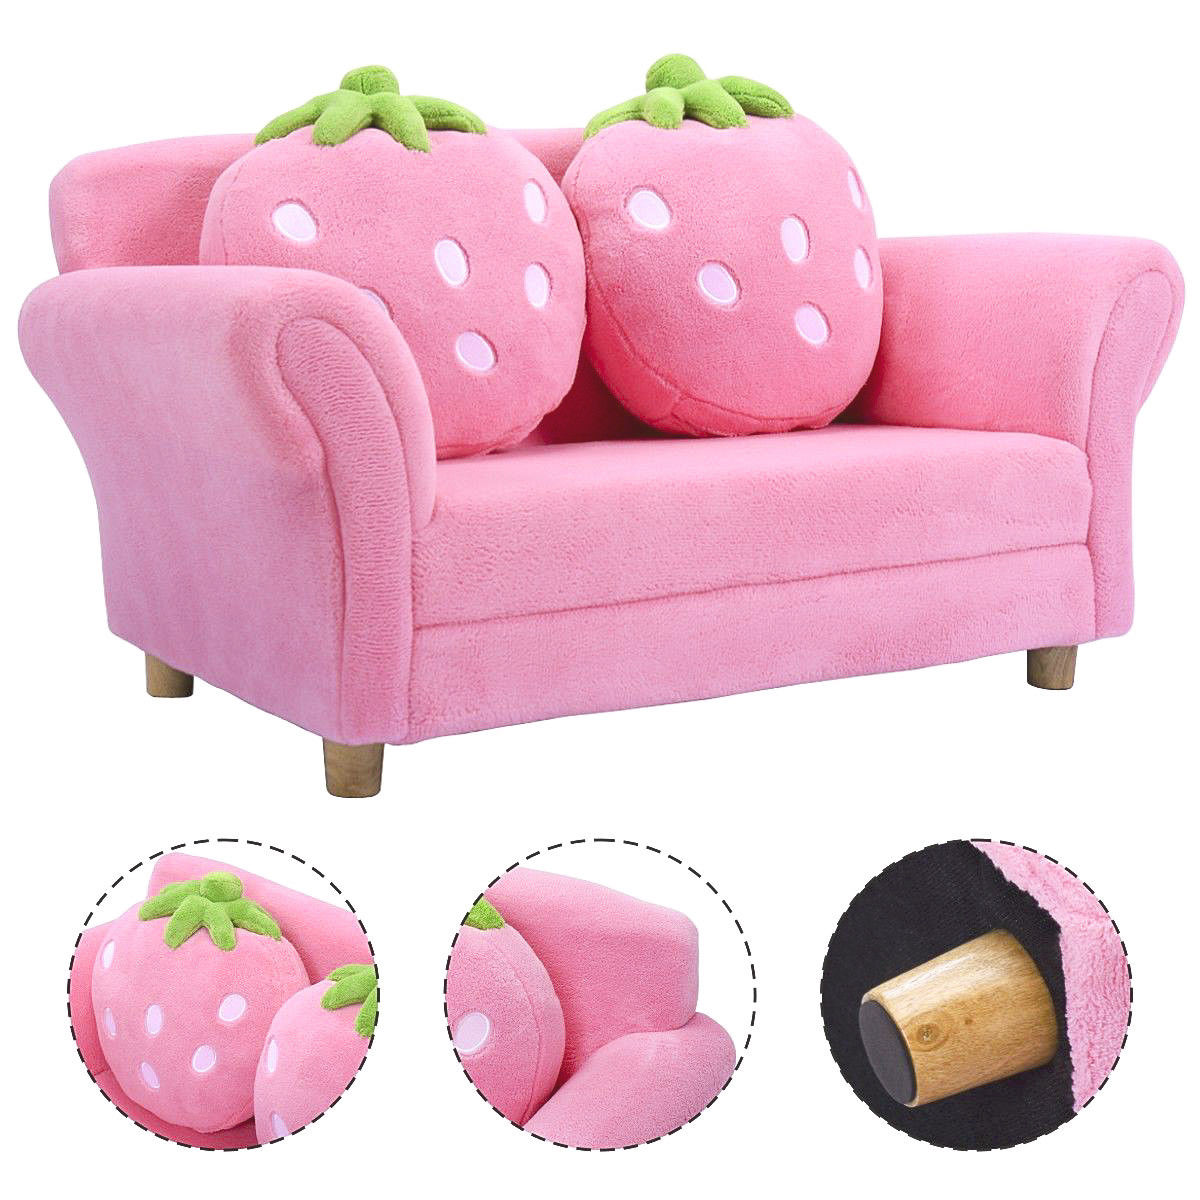 Costway Kids Sofa Strawberry Armrest Chair Lounge Couch W/2 Pillow Children Toddler Pink